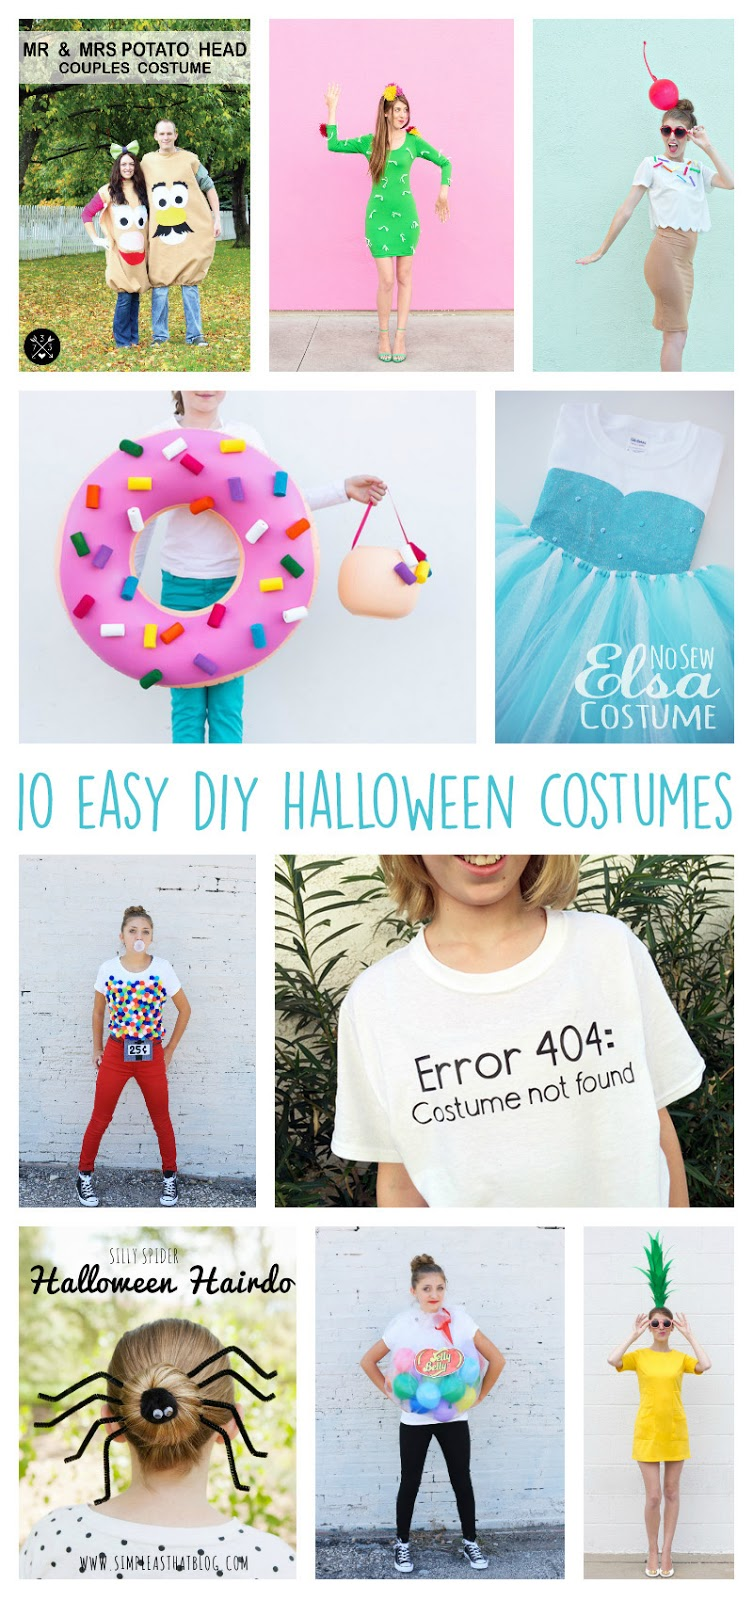 Aly Dosdall: 10 easy DIY halloween costumes